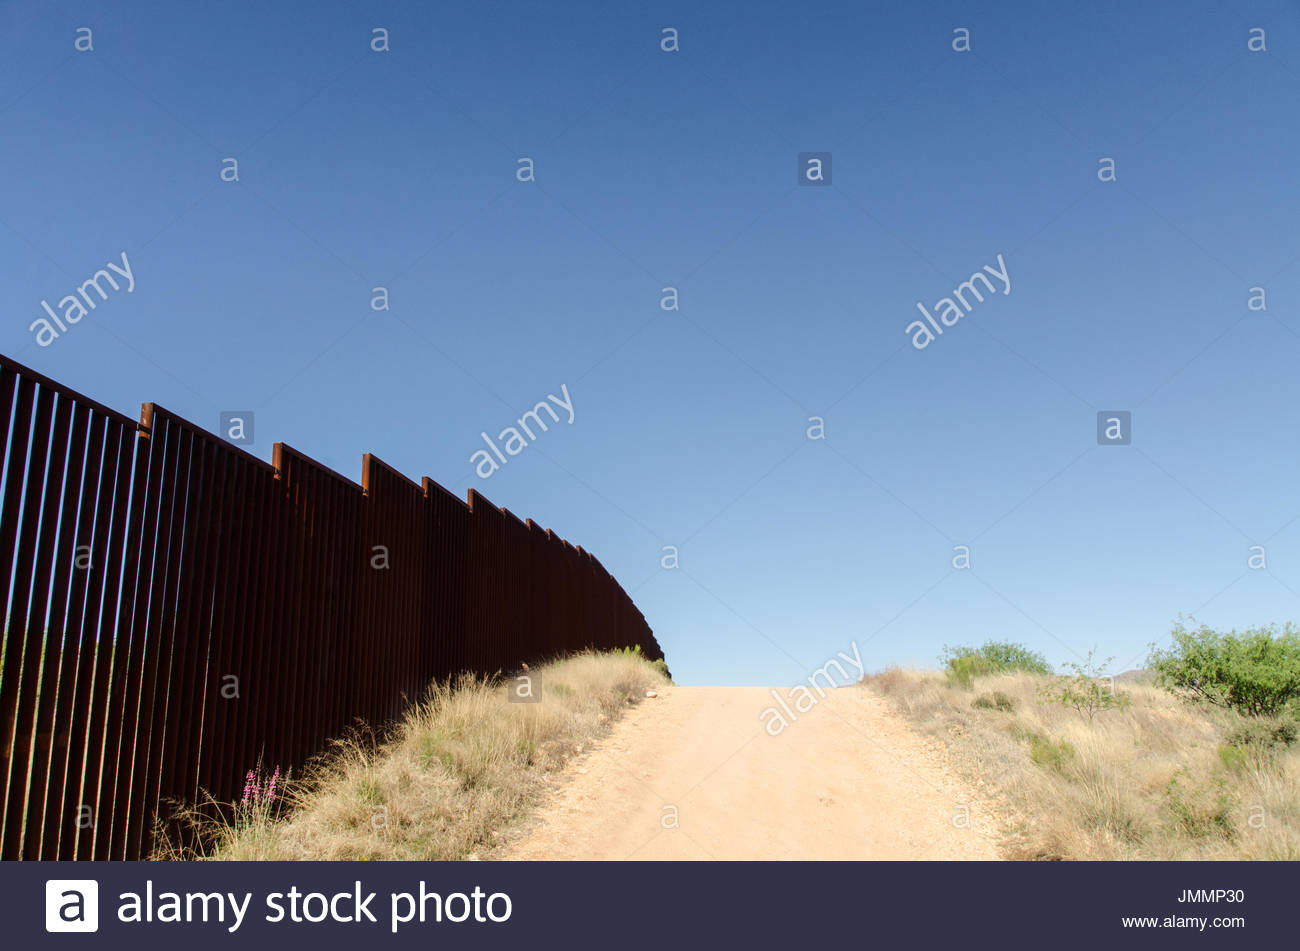 the united states mexico border timeline How mexican immigration to the us of immigrants from mexico into the united states during the 19th from the us-side of the us-mexico border in.